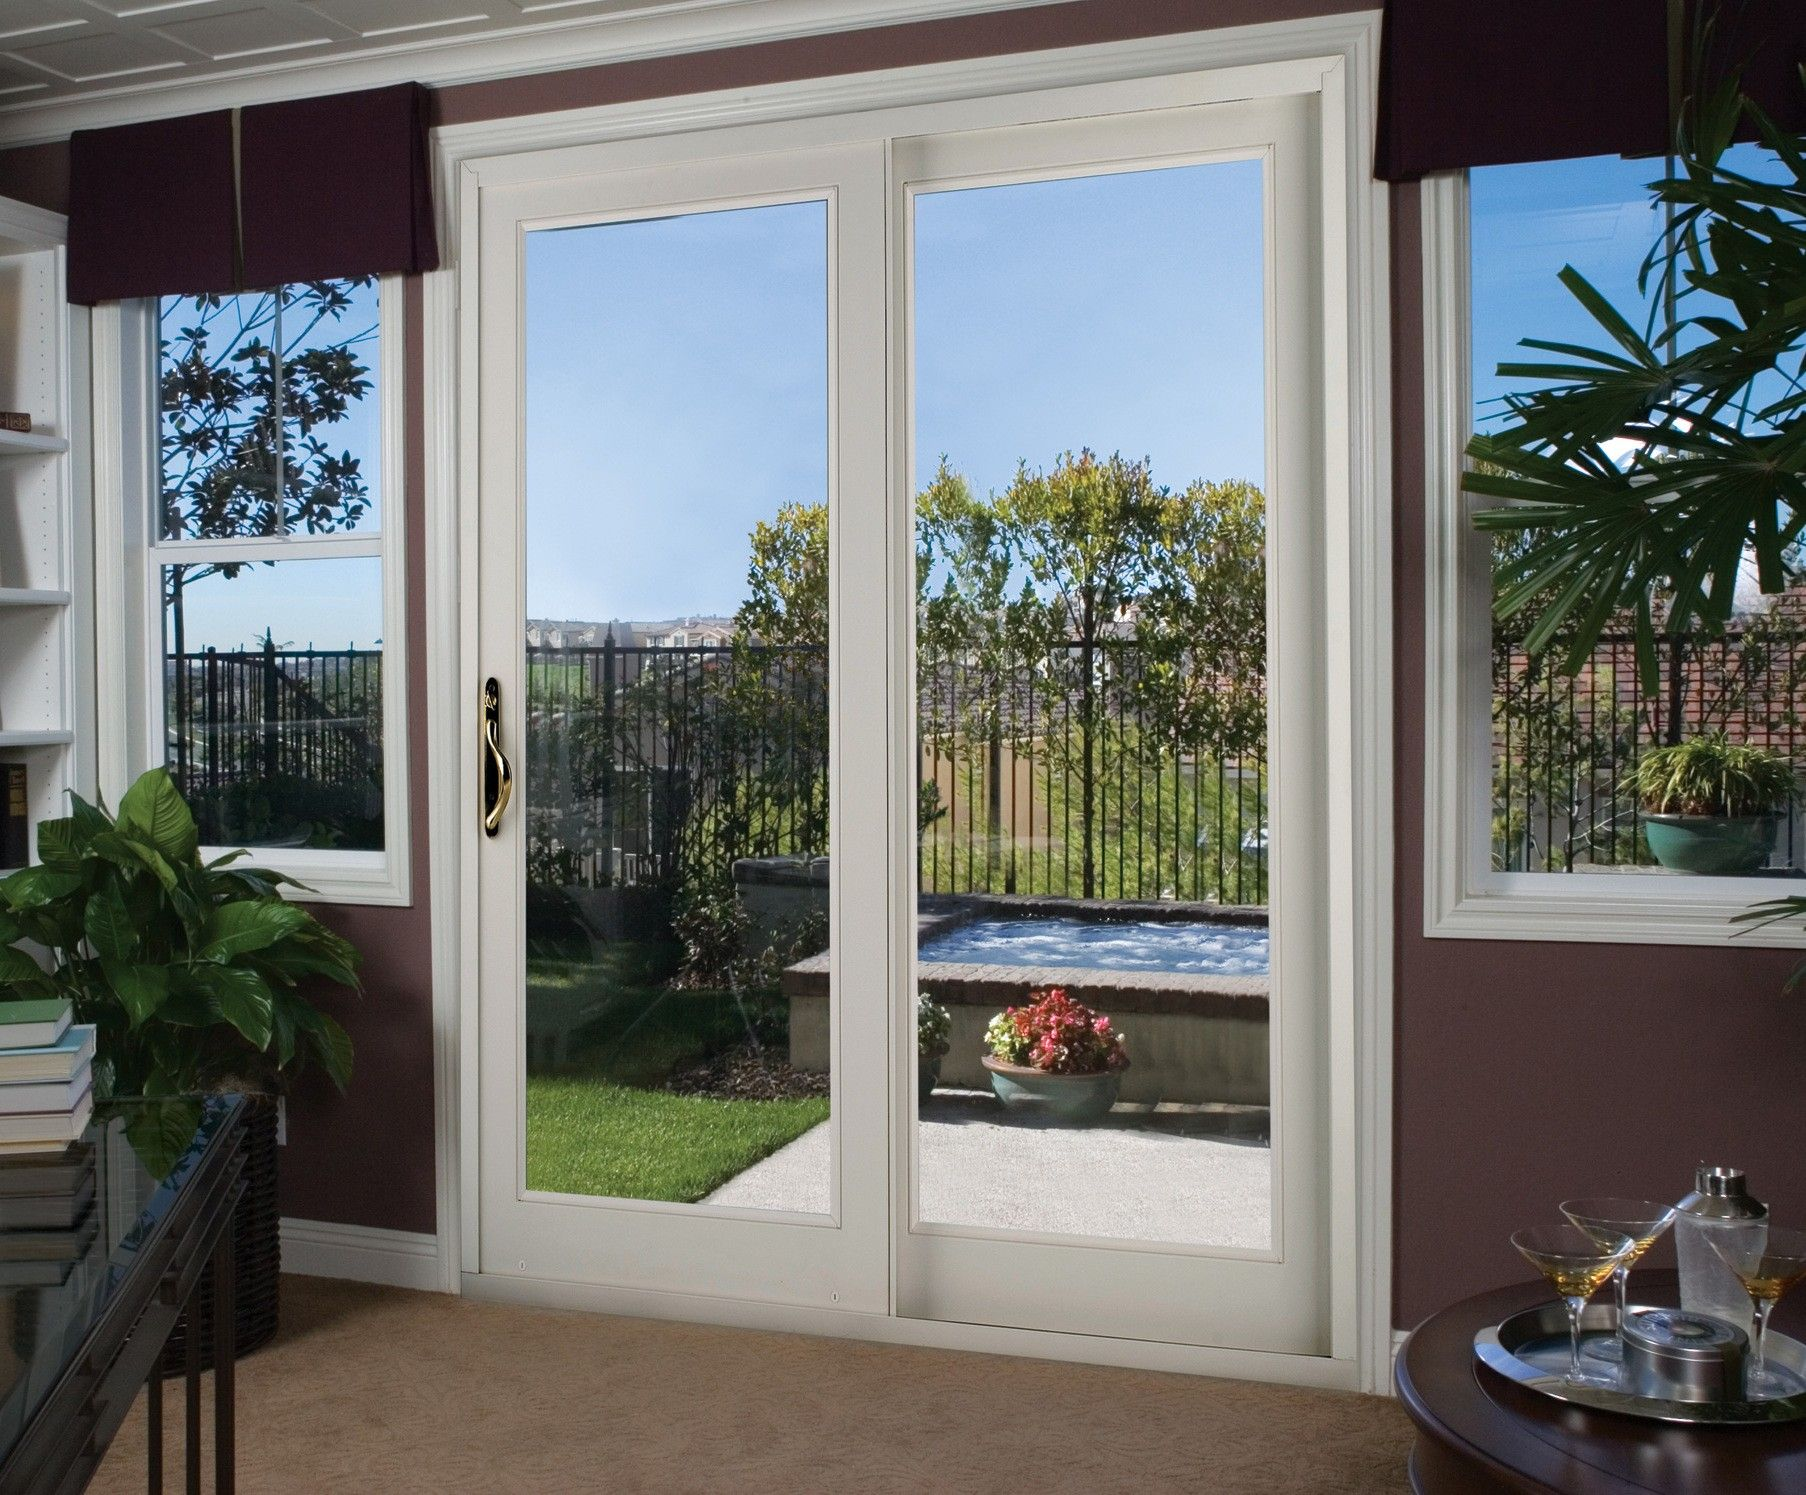 Interior Sliding Patio Door With Mirrored Glass Blinds Blinds For Patio  Doors